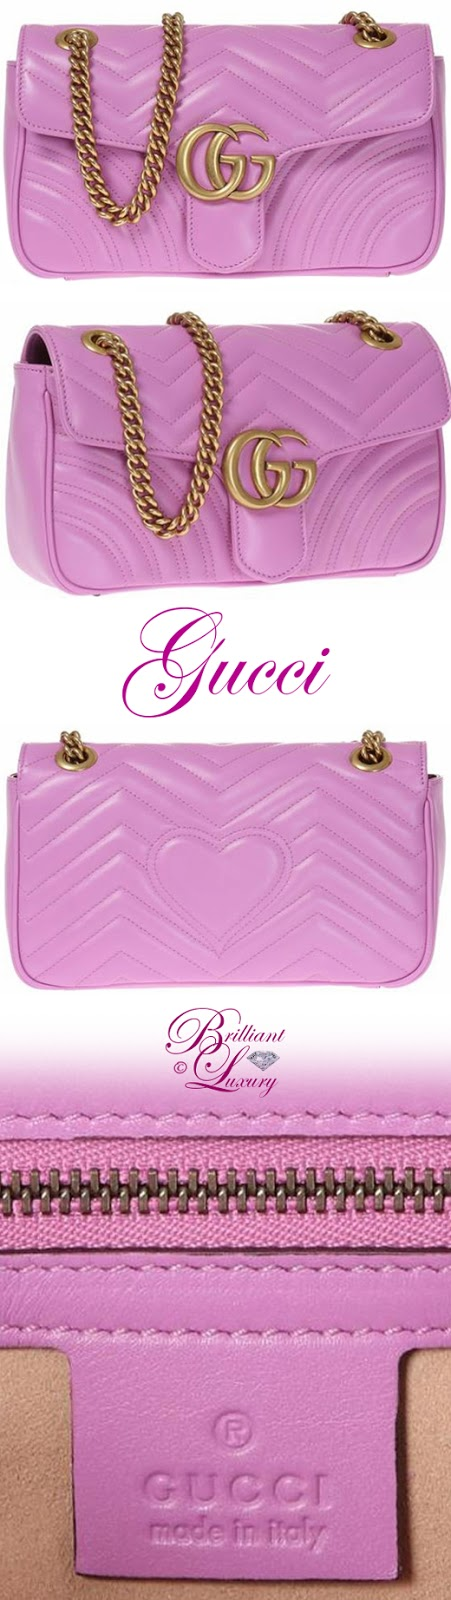 Brilliant Luxury ♦ Gucci GG Marmont Matelassé Shoulder Bag